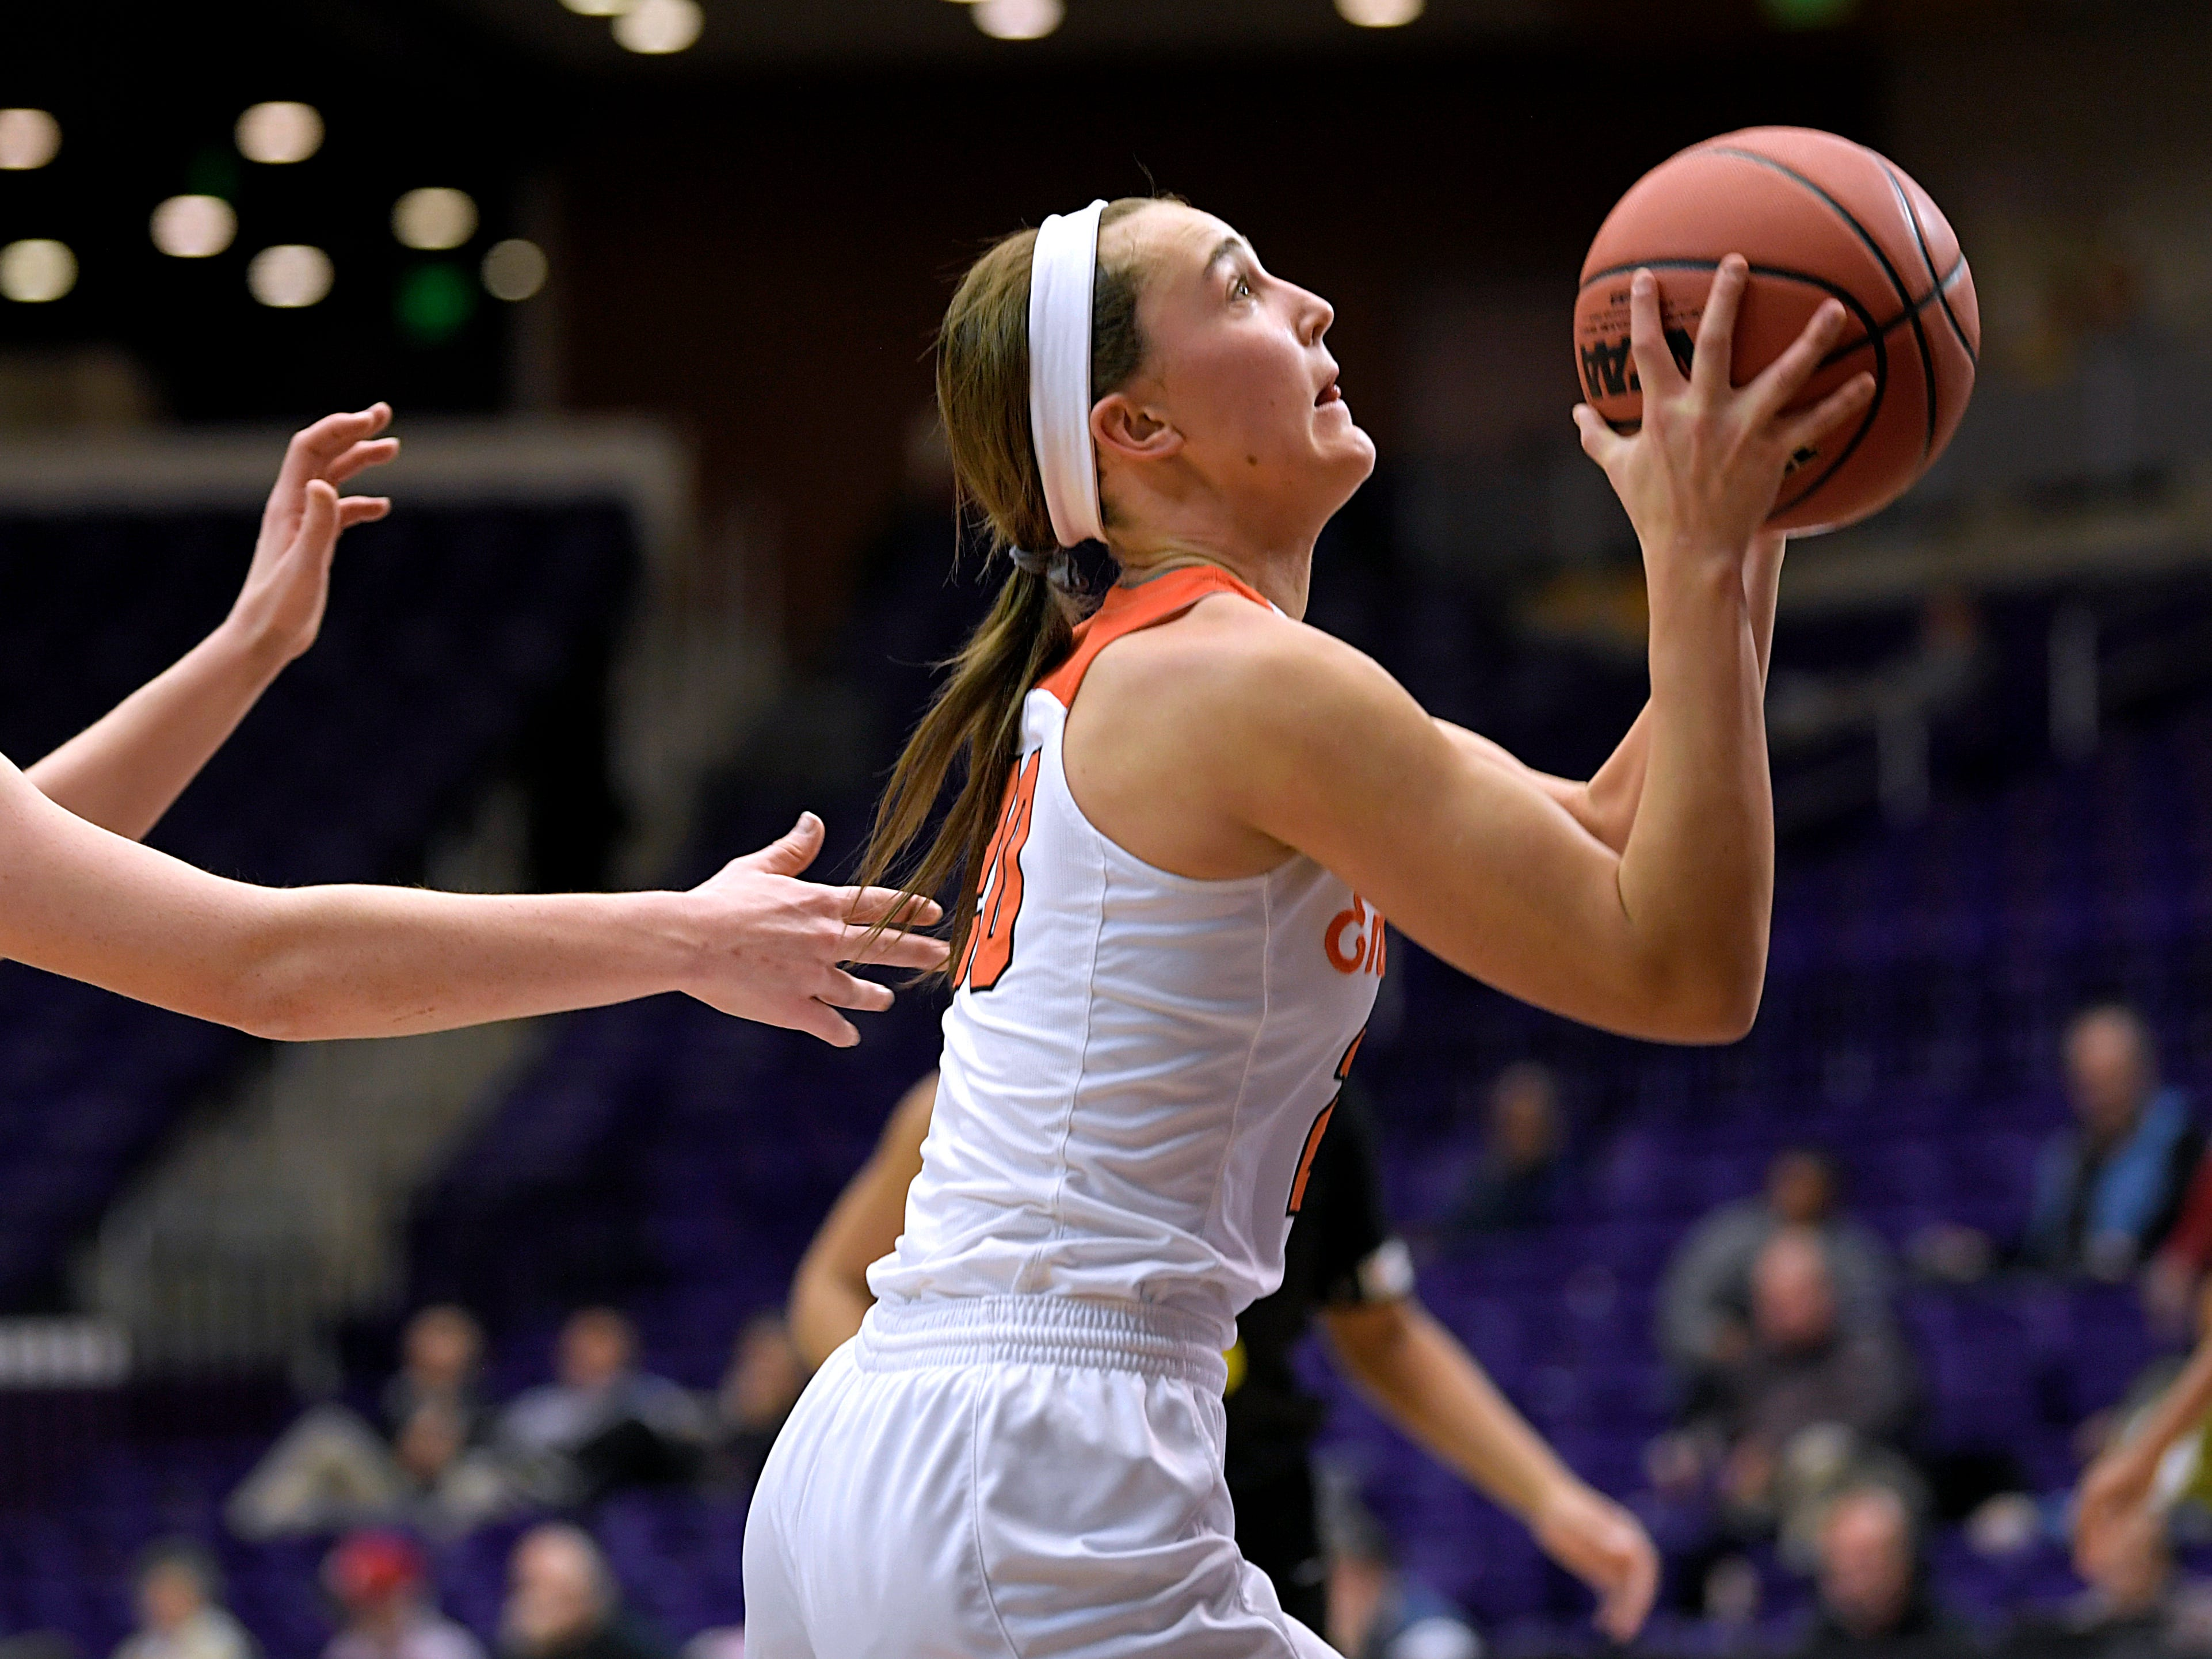 Ensworth's Annabel Frist (20) shoots a basket against Hutchison during the TSSAA Division II Class AA semifinals at Lipscomb University's Allen Arena in Nashville on Thursday, Feb. 28, 2019.